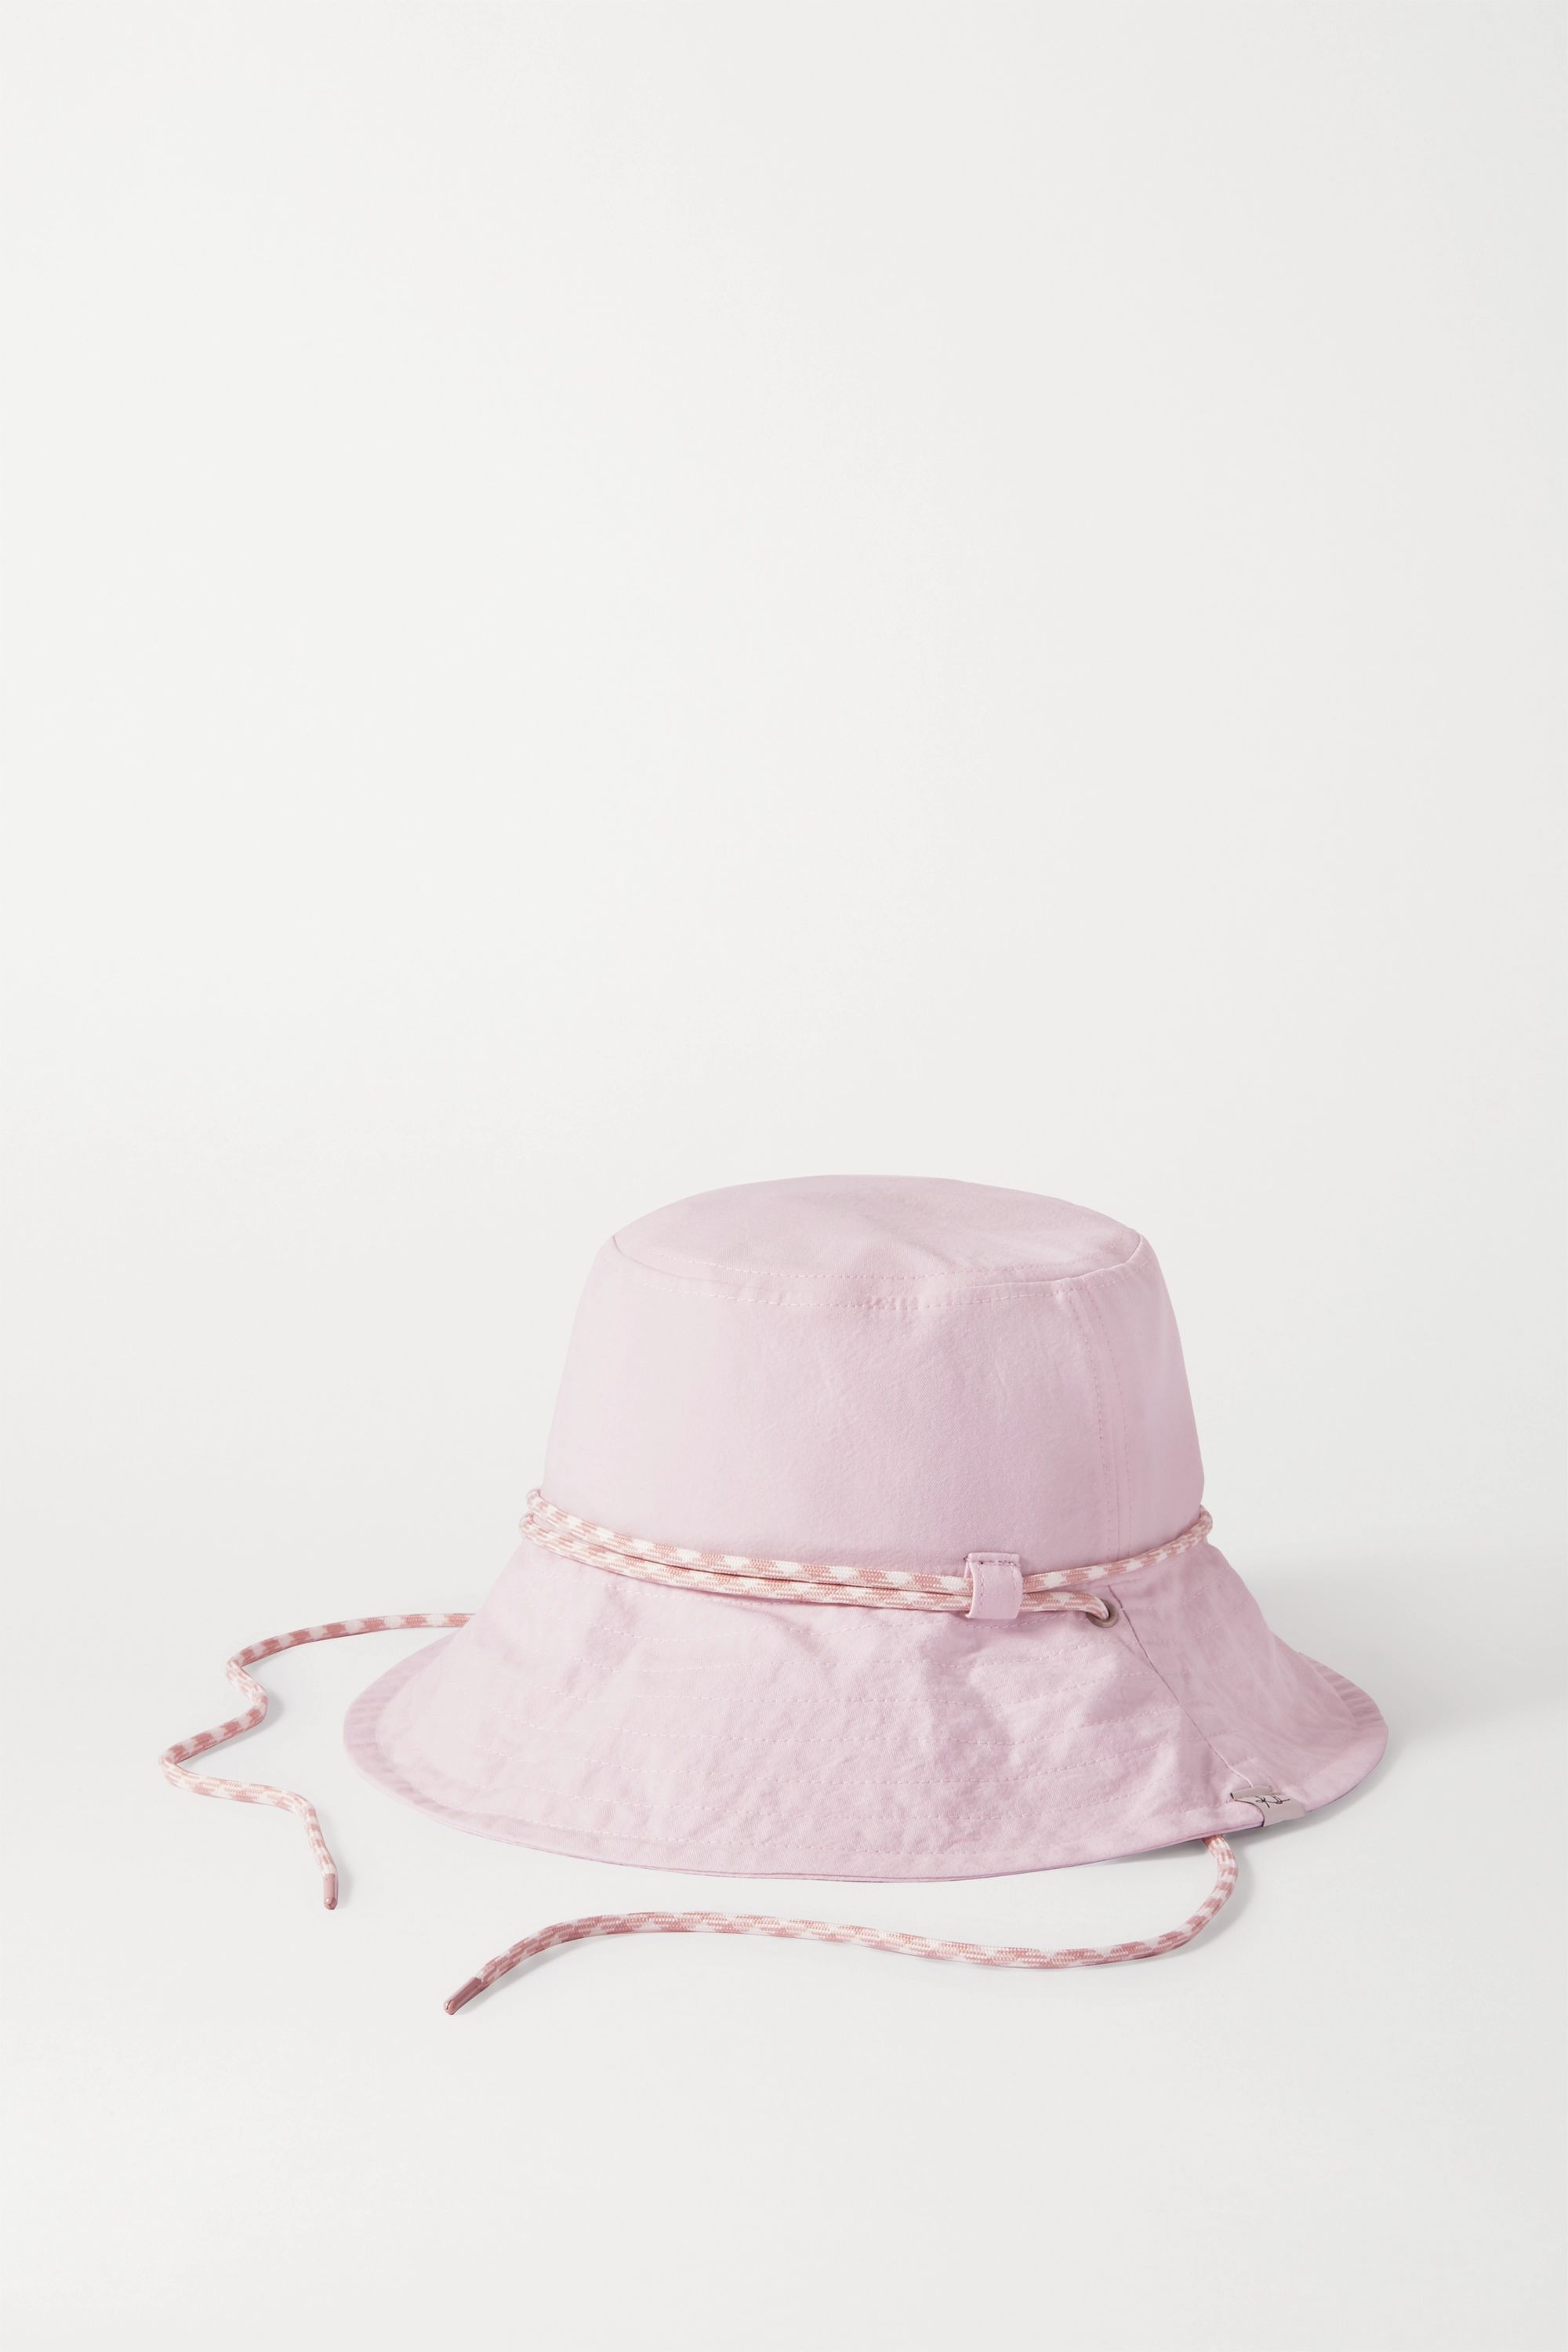 How To Wear A Bucket Hat Celebrity Outfit Inspiration